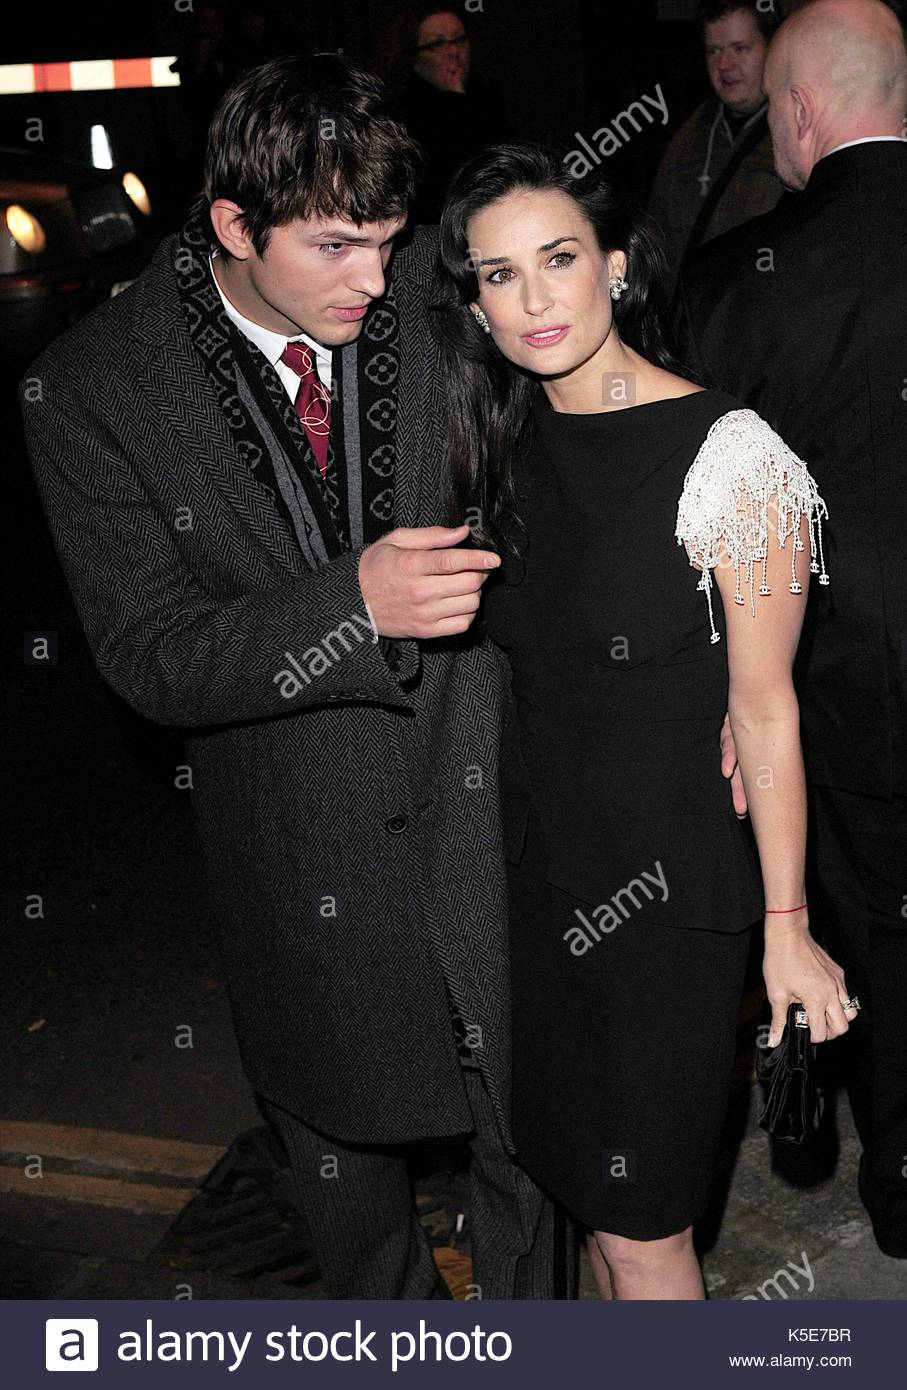 ashton kutcher and demi moore celebrities attend the uk charity